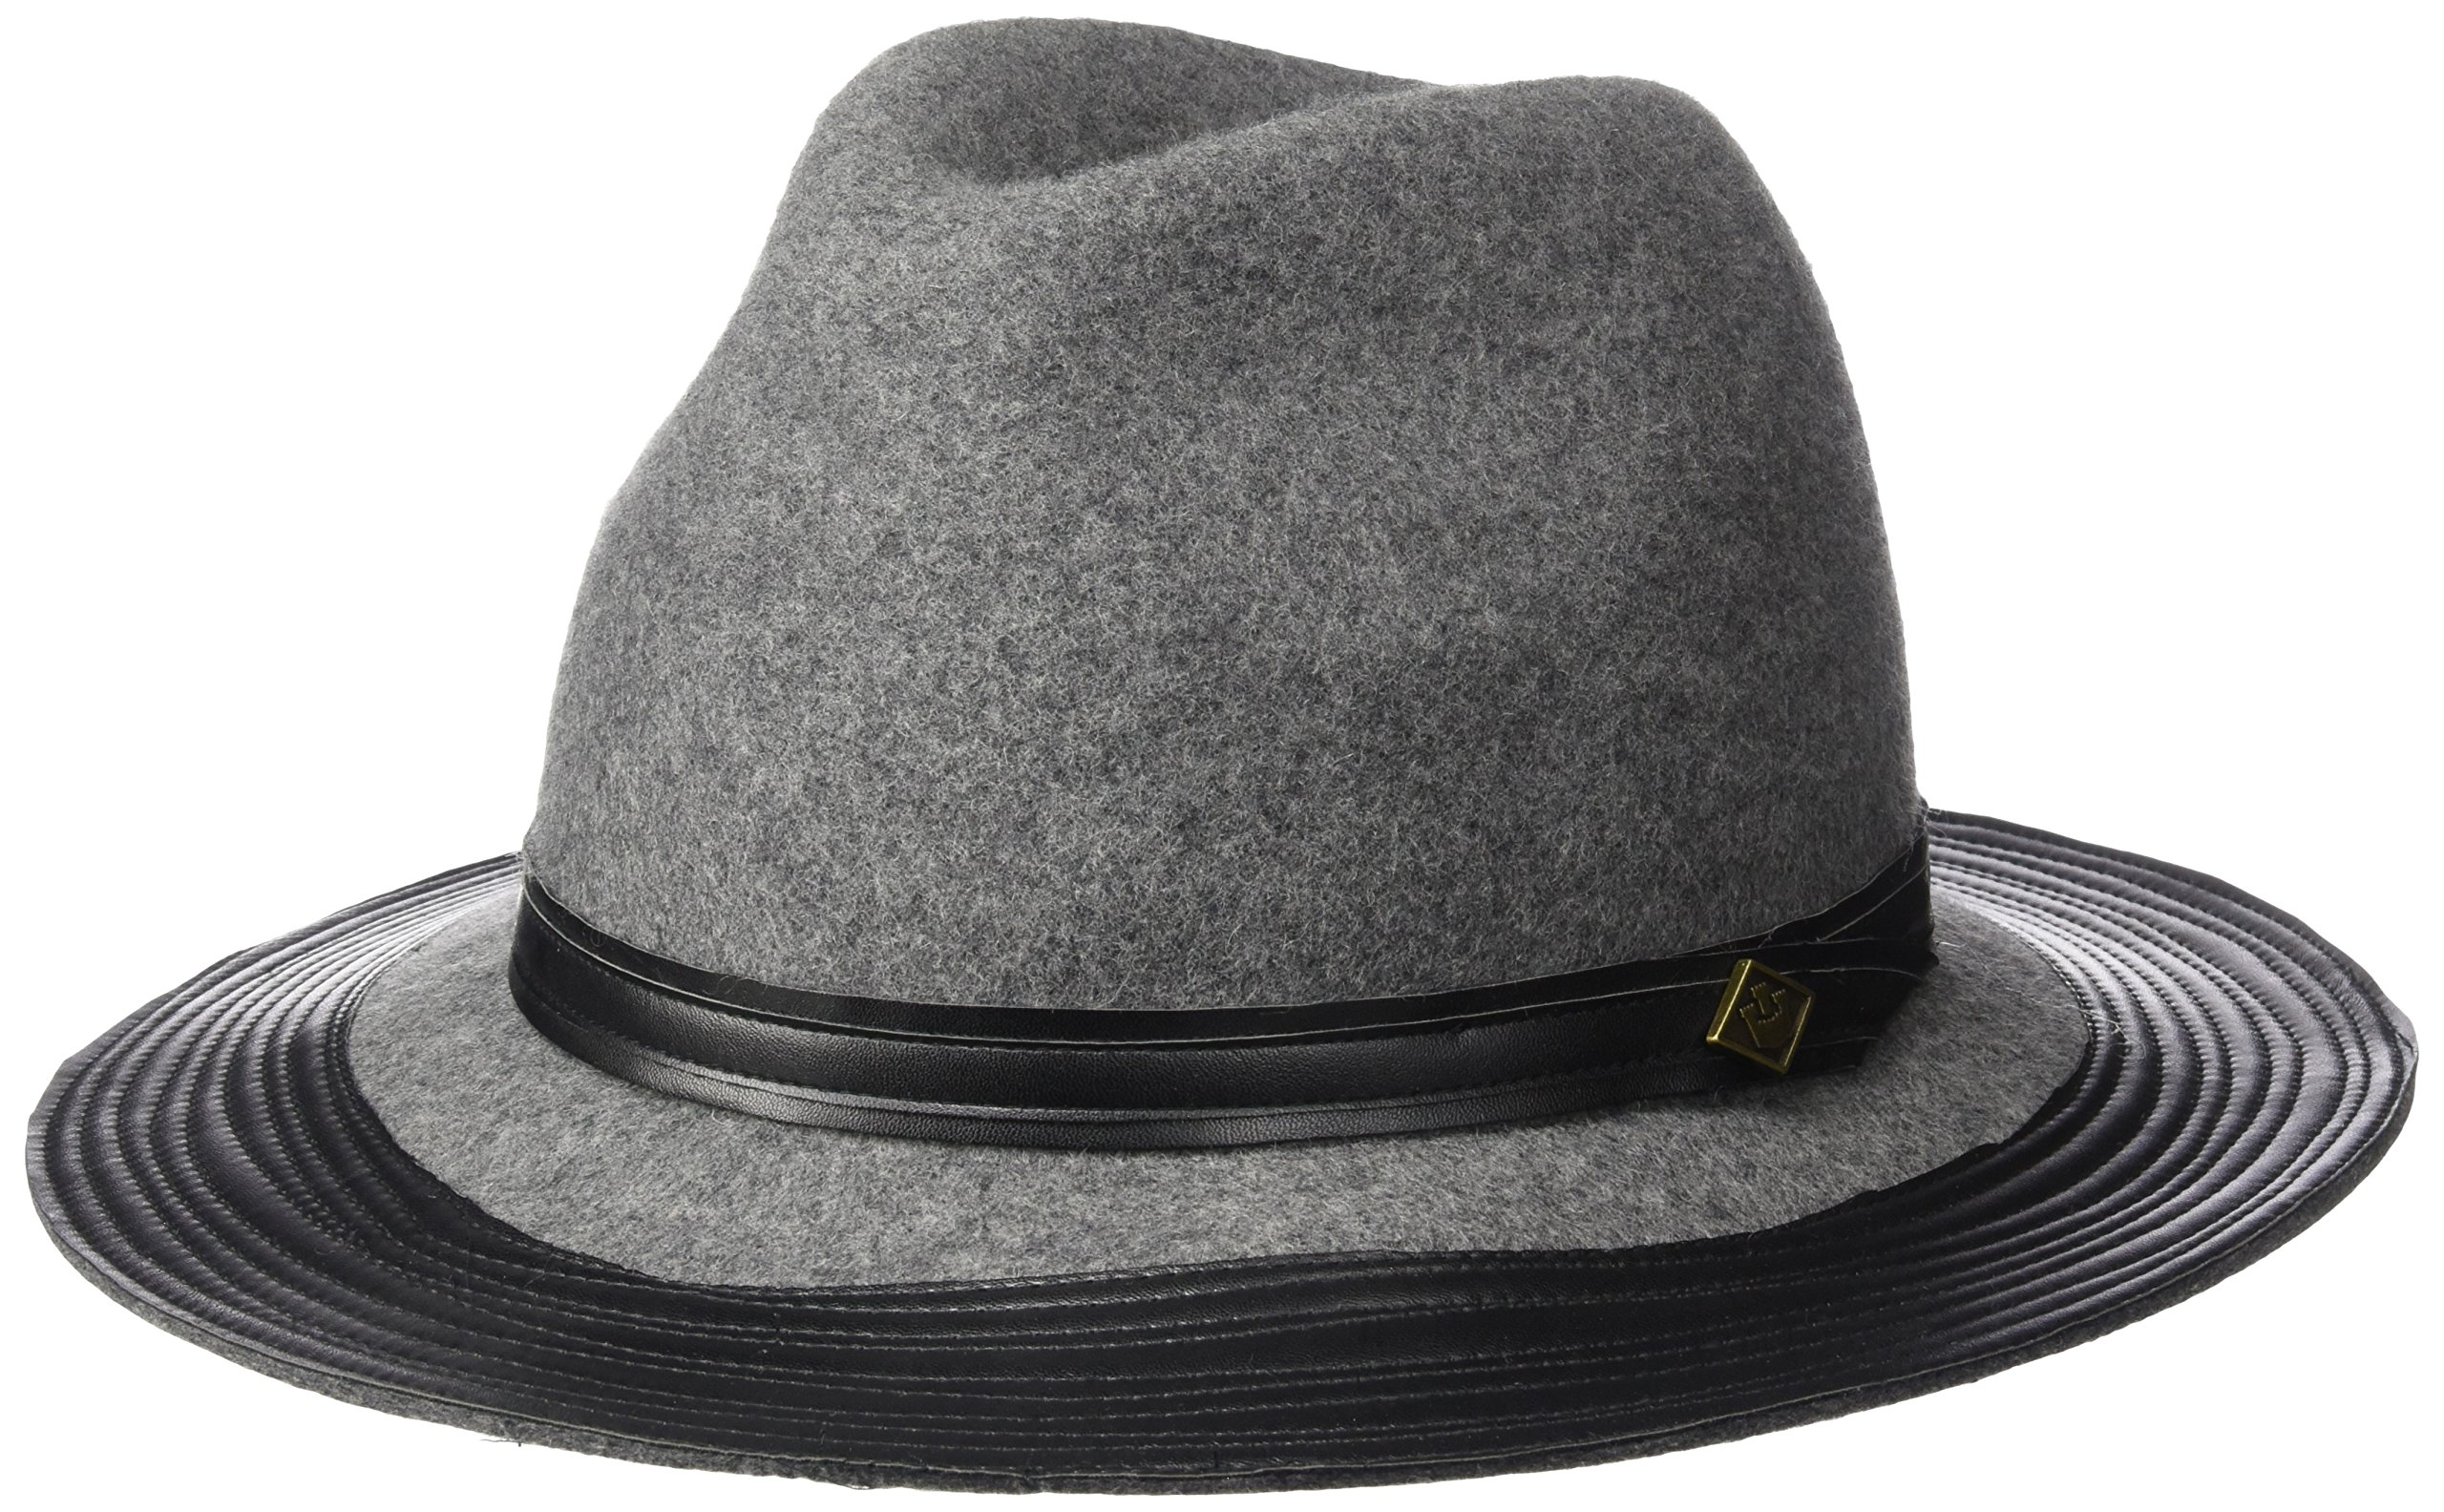 Goorin Bros. Women's Min Wide Fedora with Faux Leather Band and Brim, Gray Medium